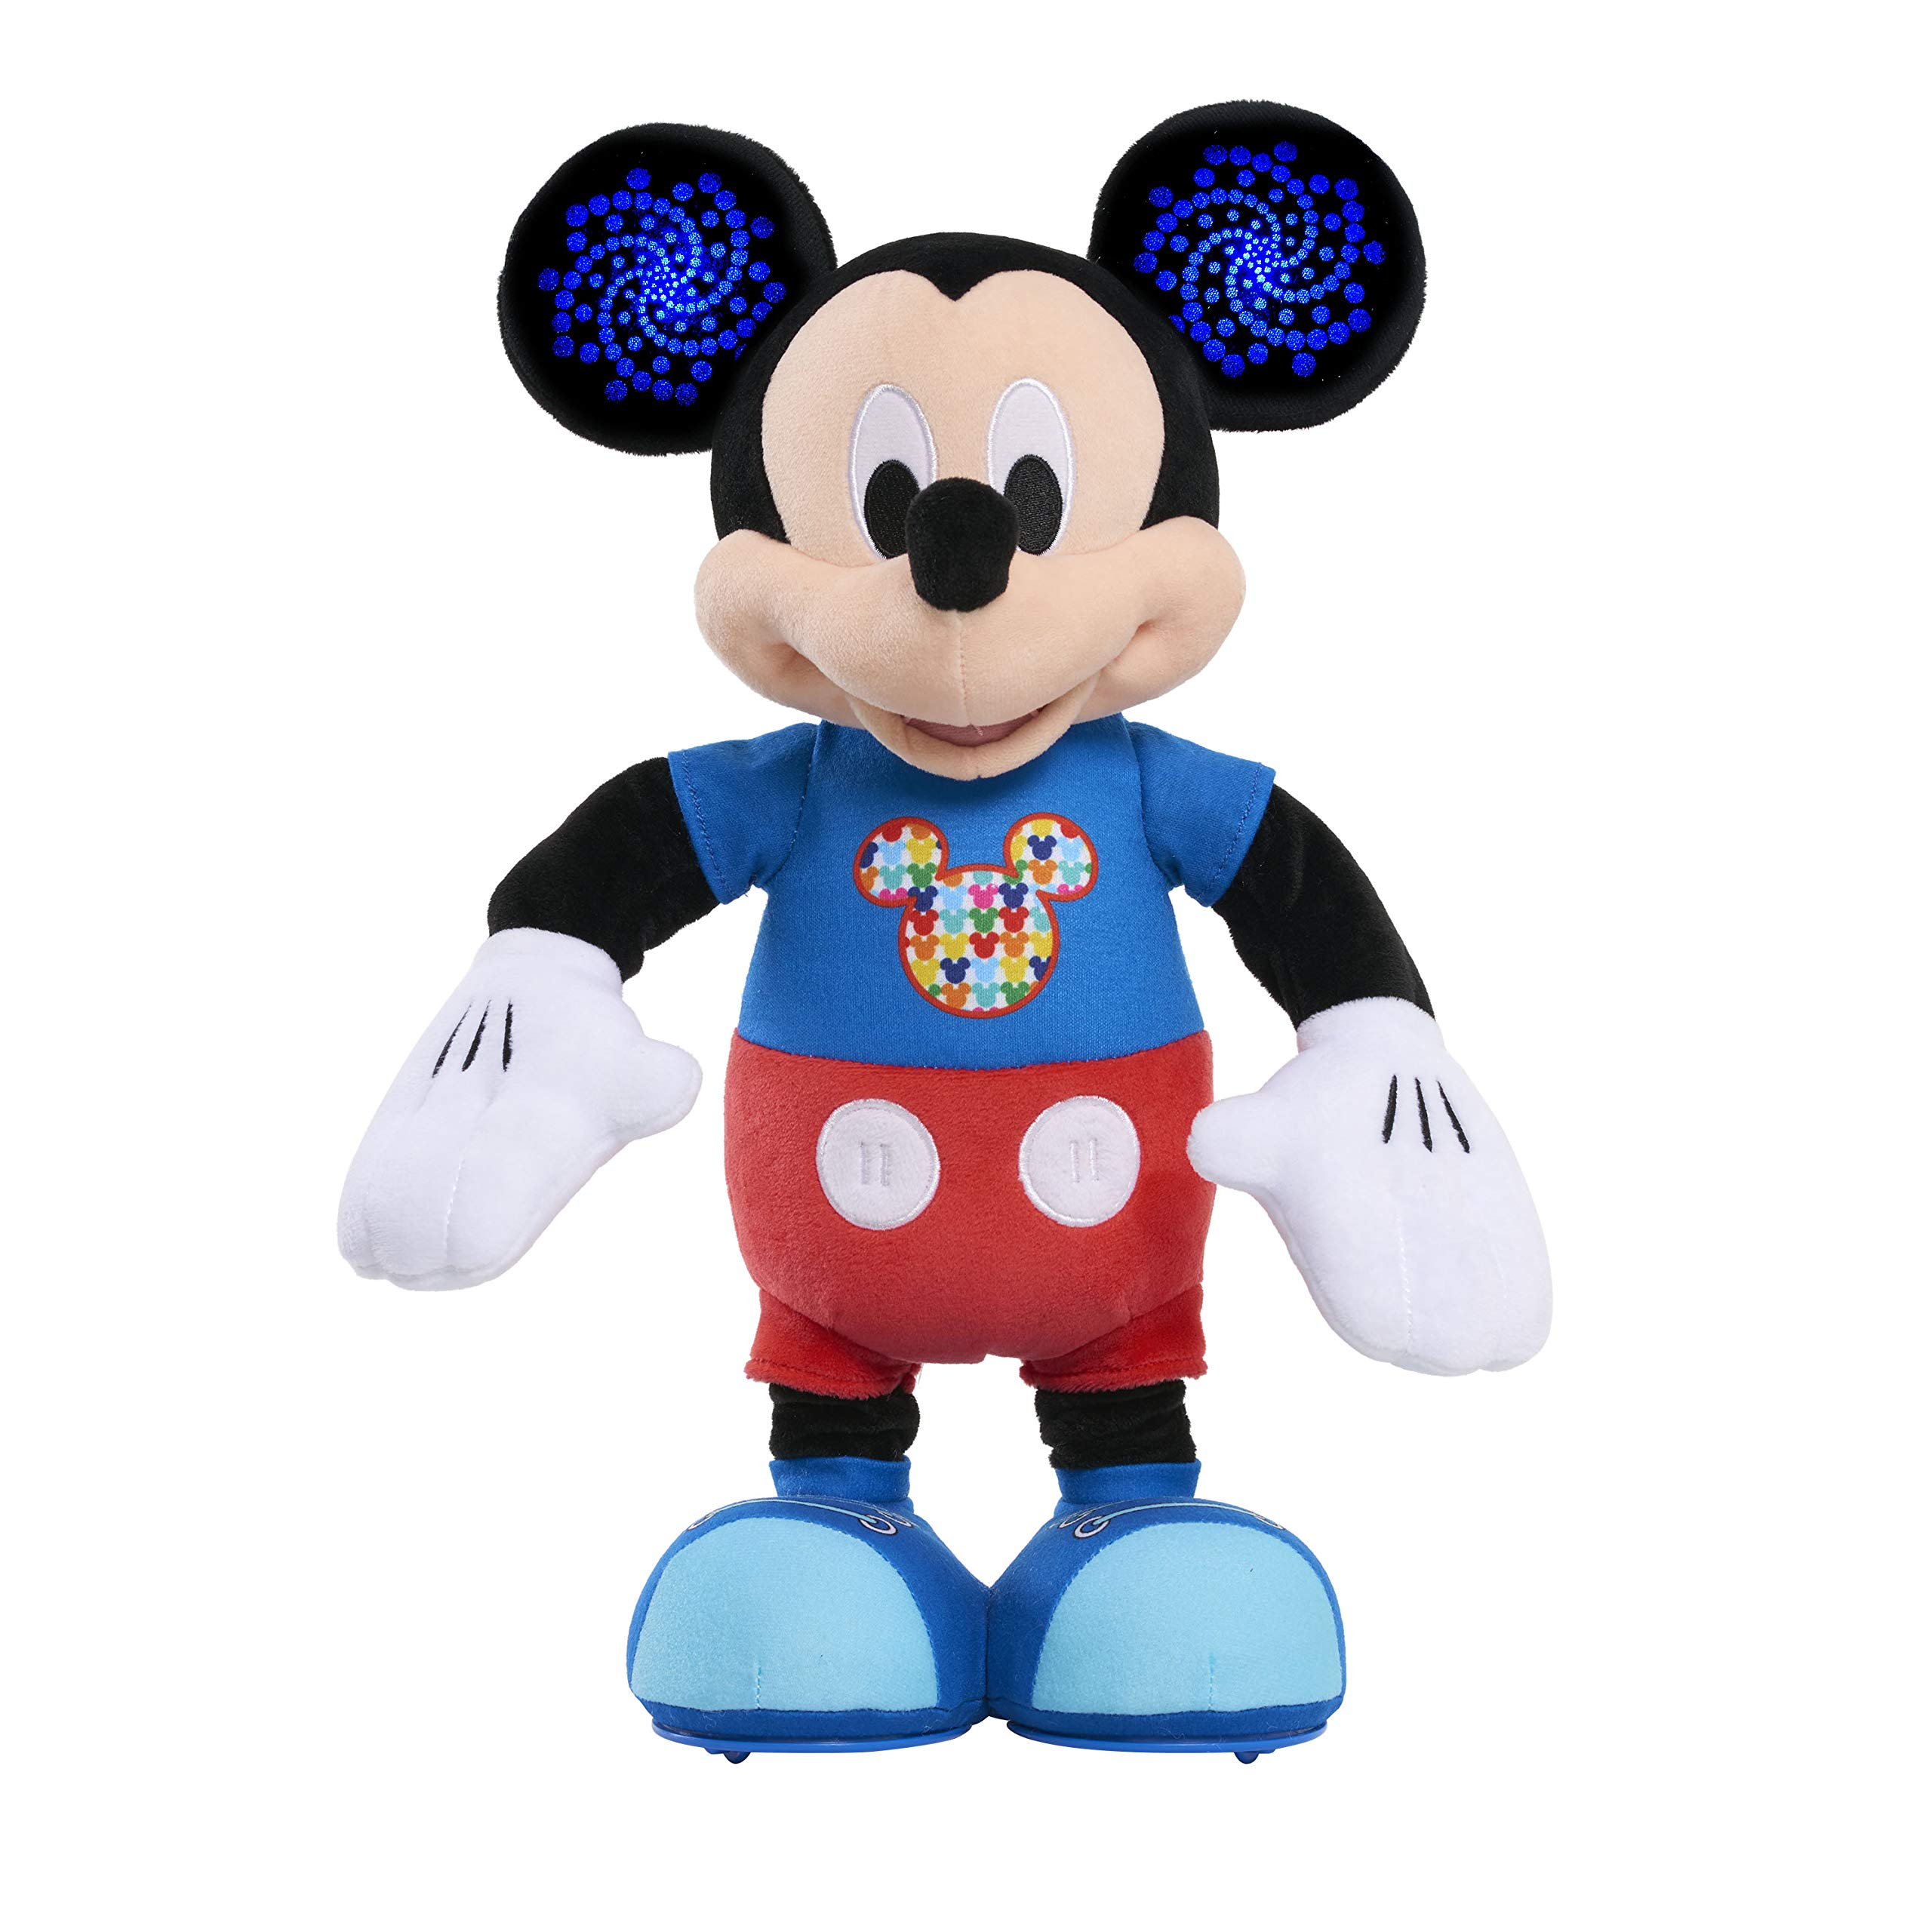 Mickey Mouse Hot Dog Dance Break Mickey Plush by Mickey Mouse